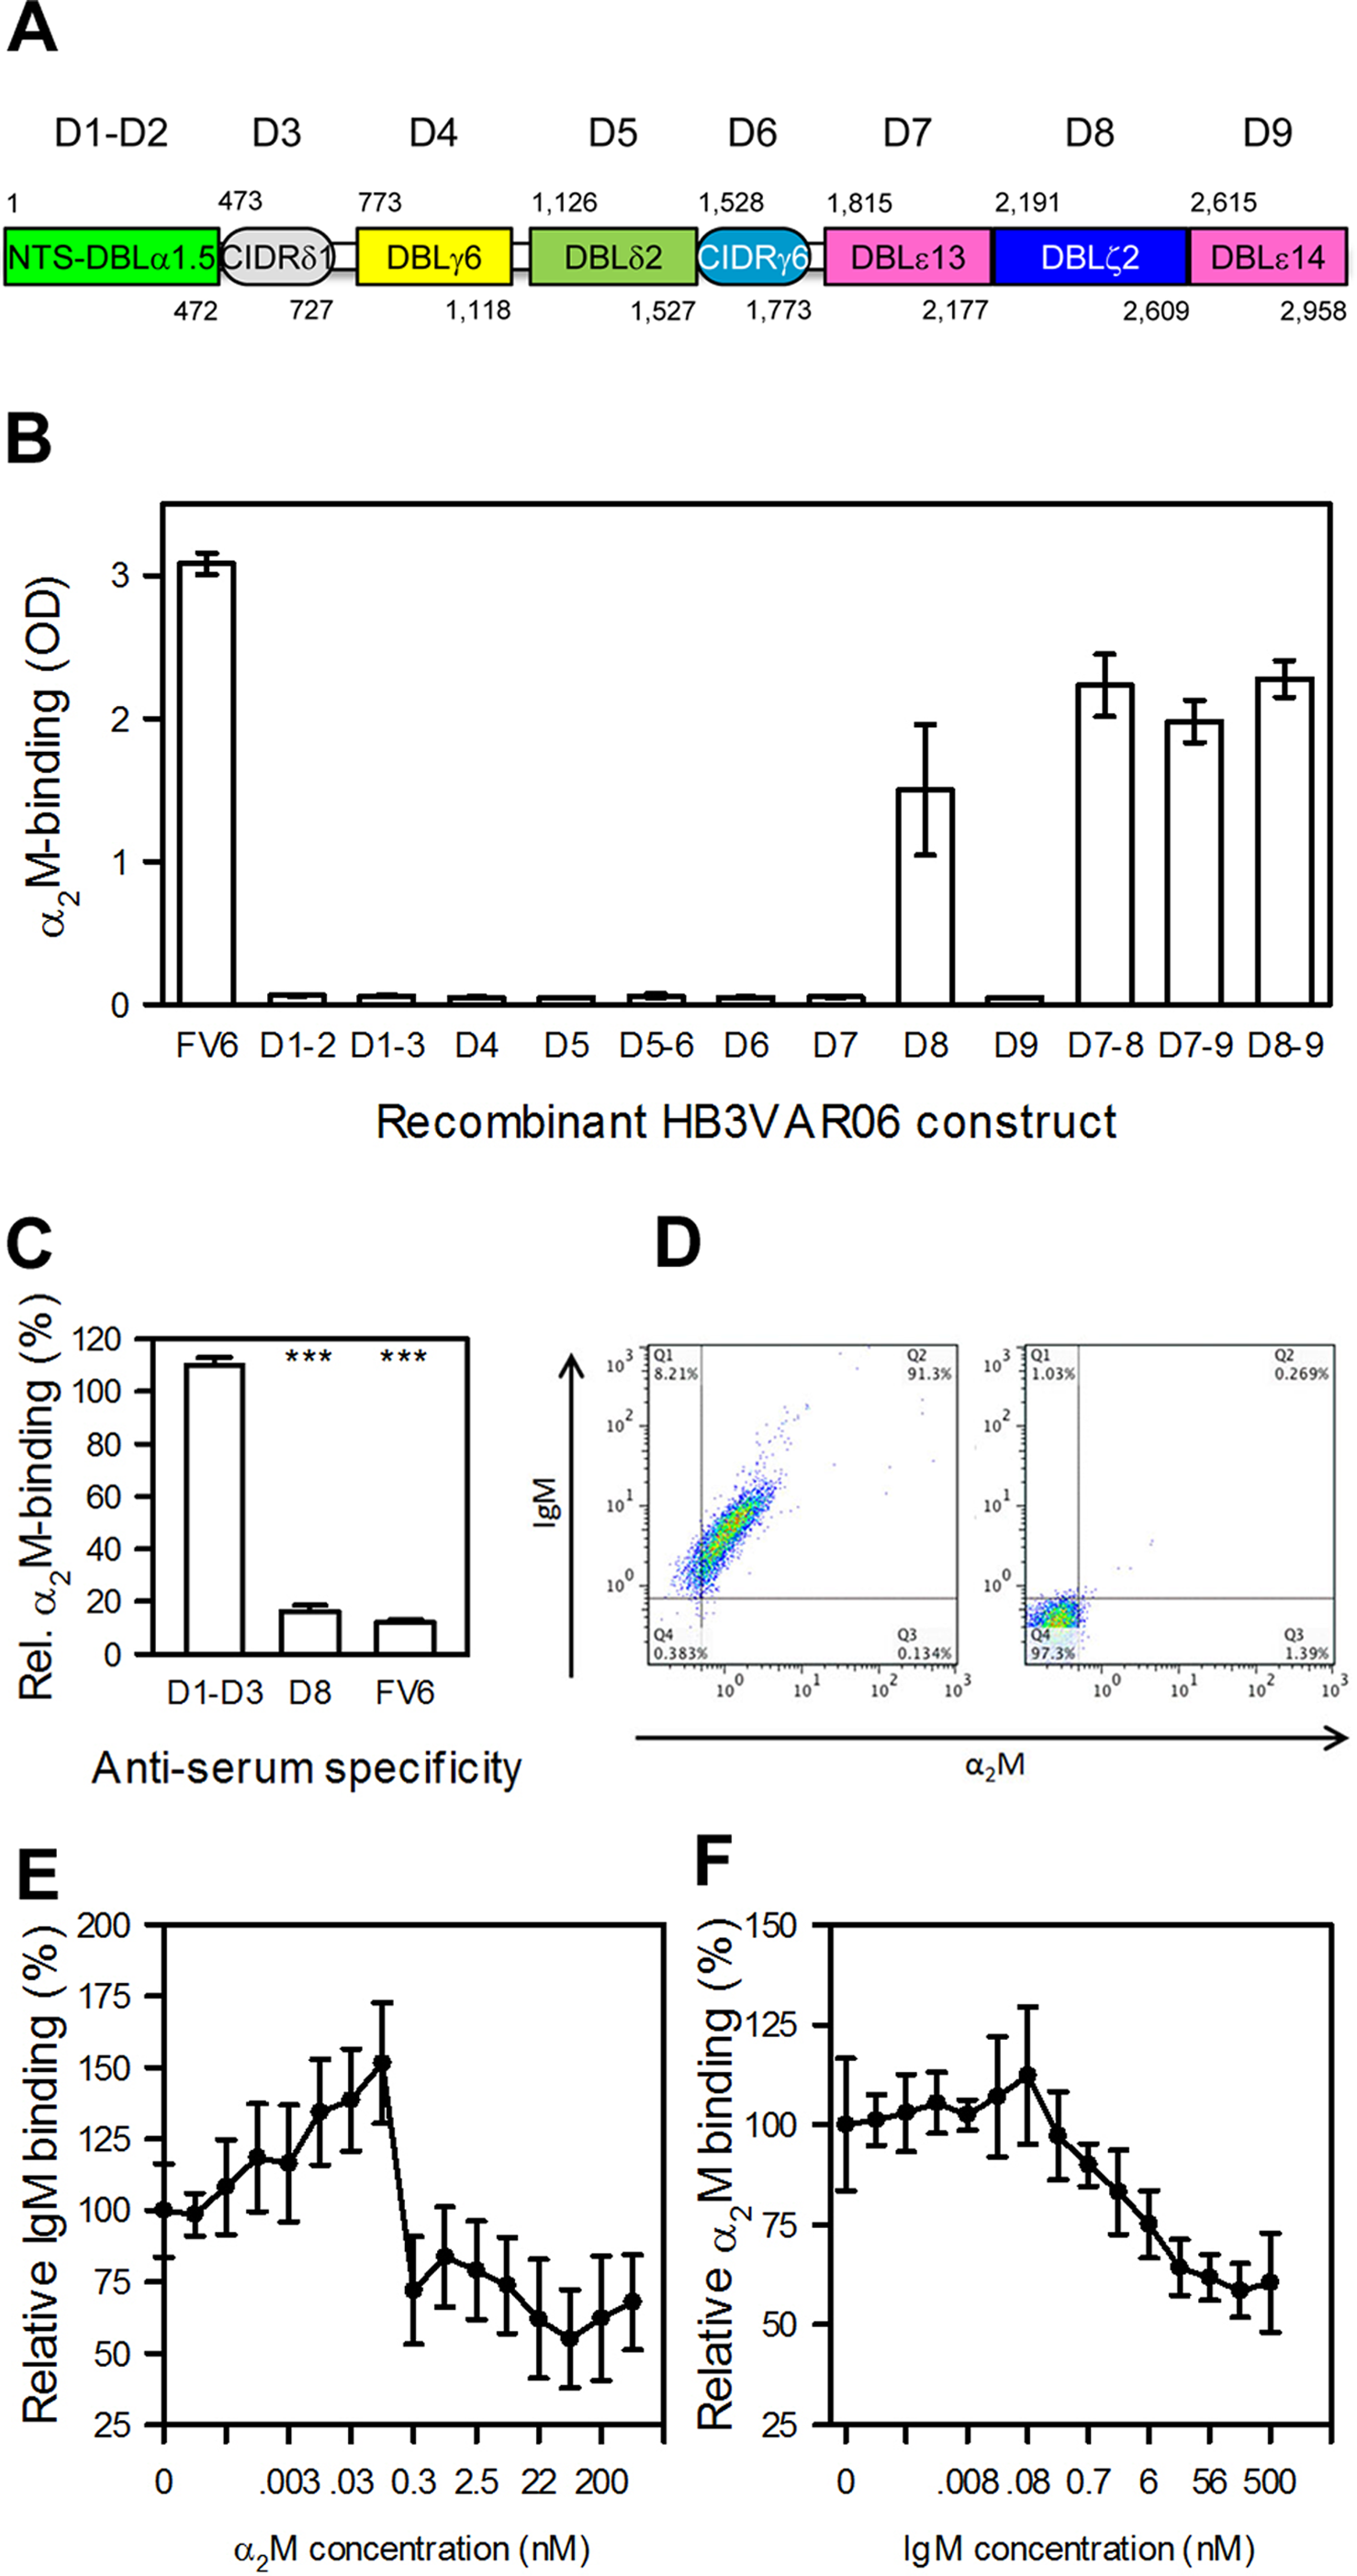 Identification and characterization of the α<sub>2</sub>M-binding domain in HB3VAR06.